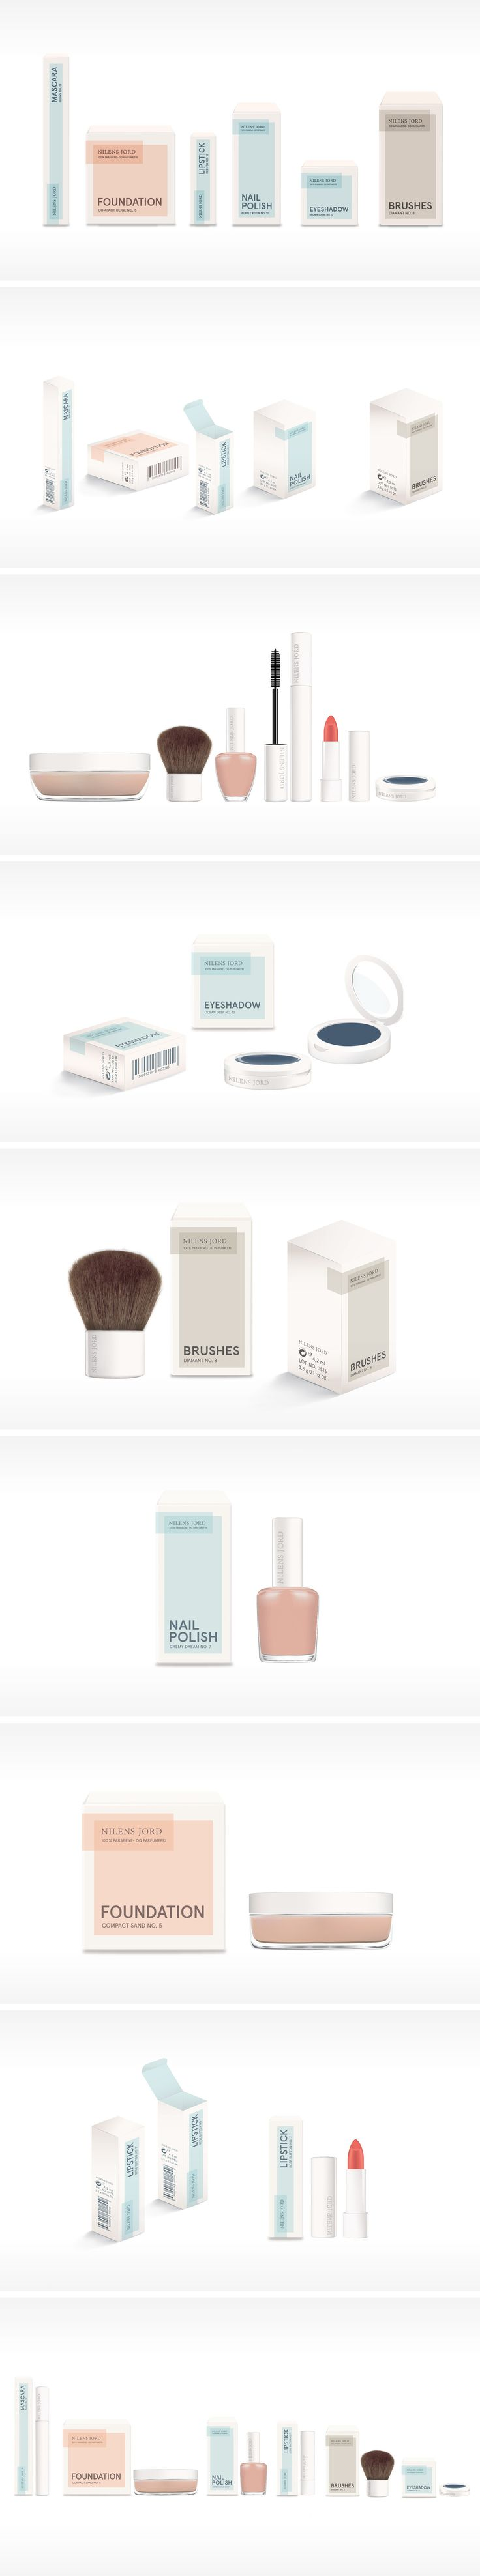 Product and packaging redesign for the makeup brand Nilens Jord. Work by Camilla Heegaard Severinsen, Malene Habroe & Anne Sofie Nordlund Hansen